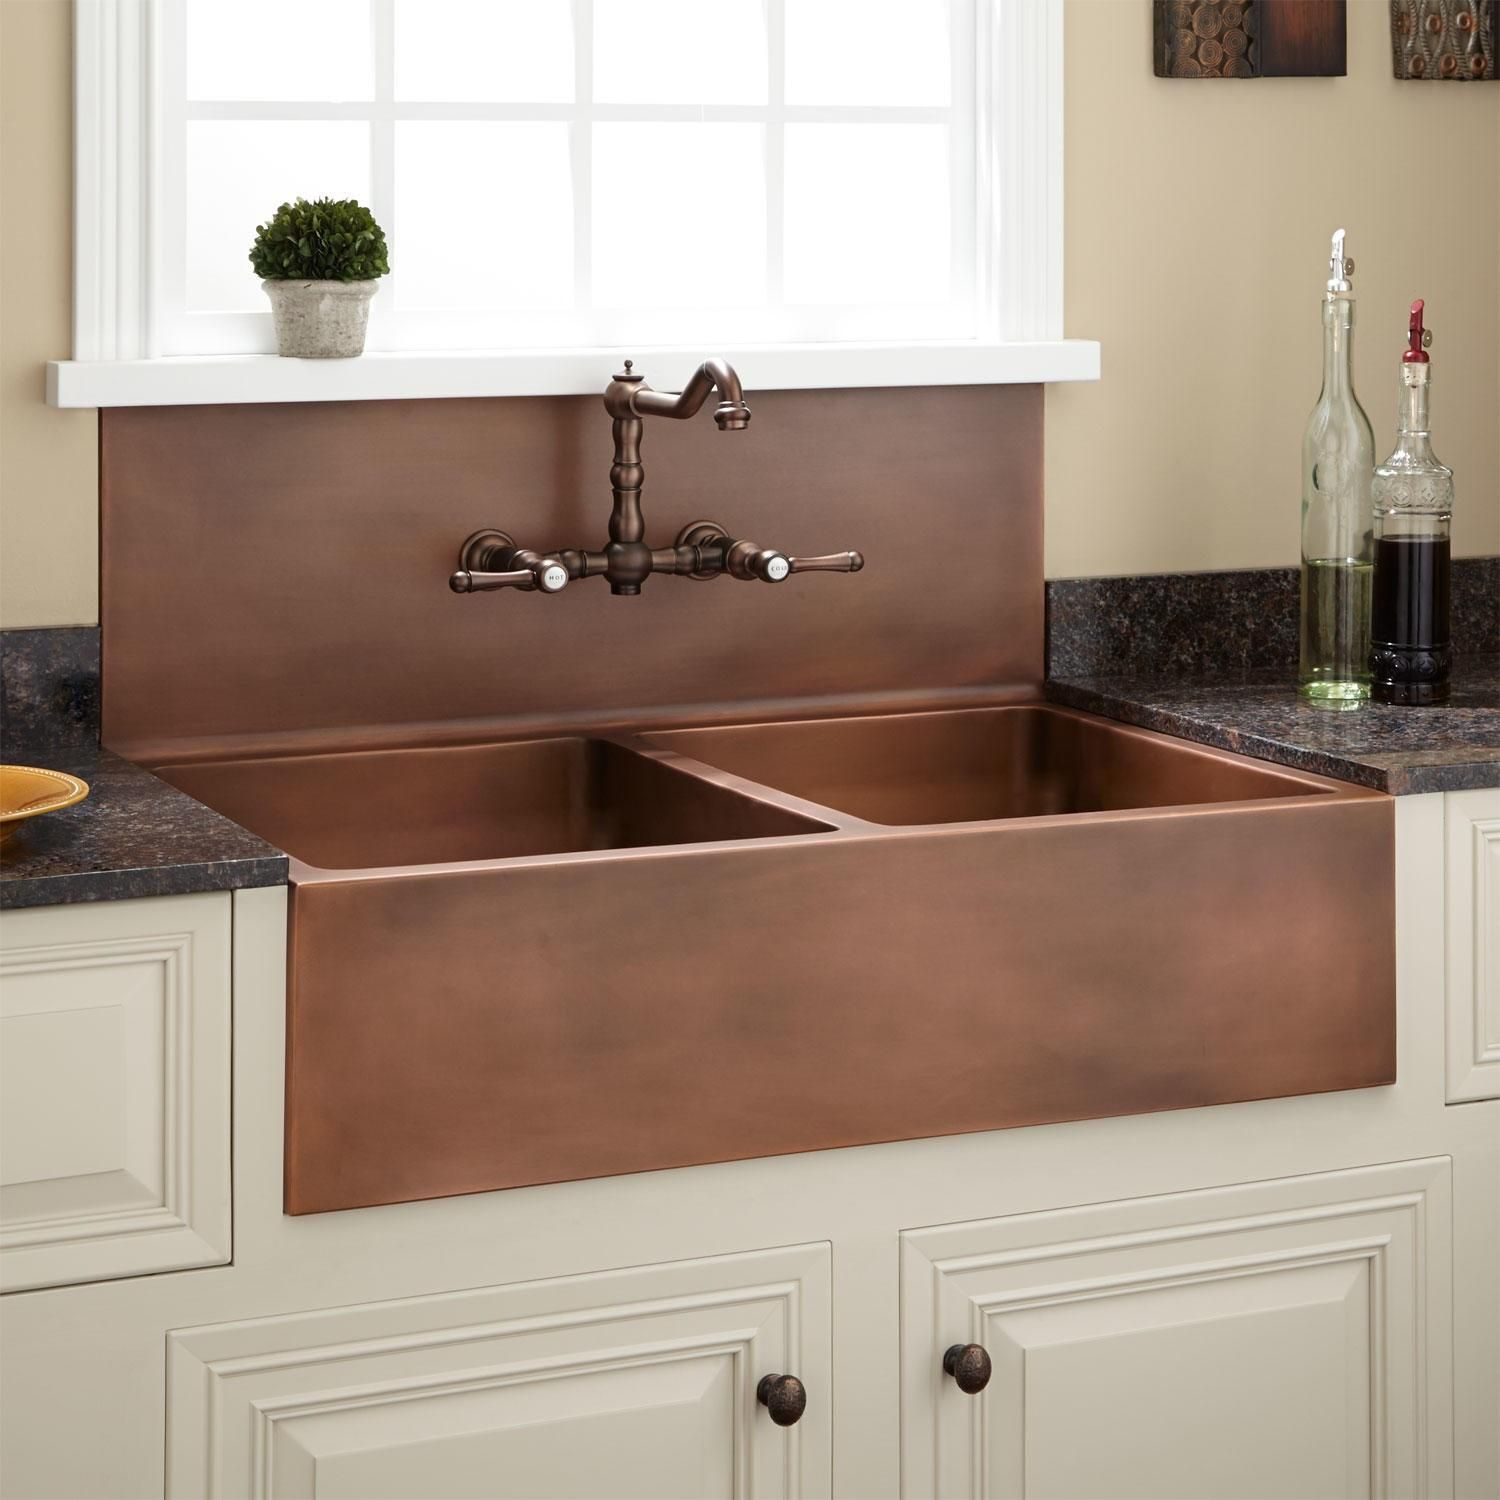 Farm Sink With Backsplash Part 1 - Double Farmhouse Sink With ...